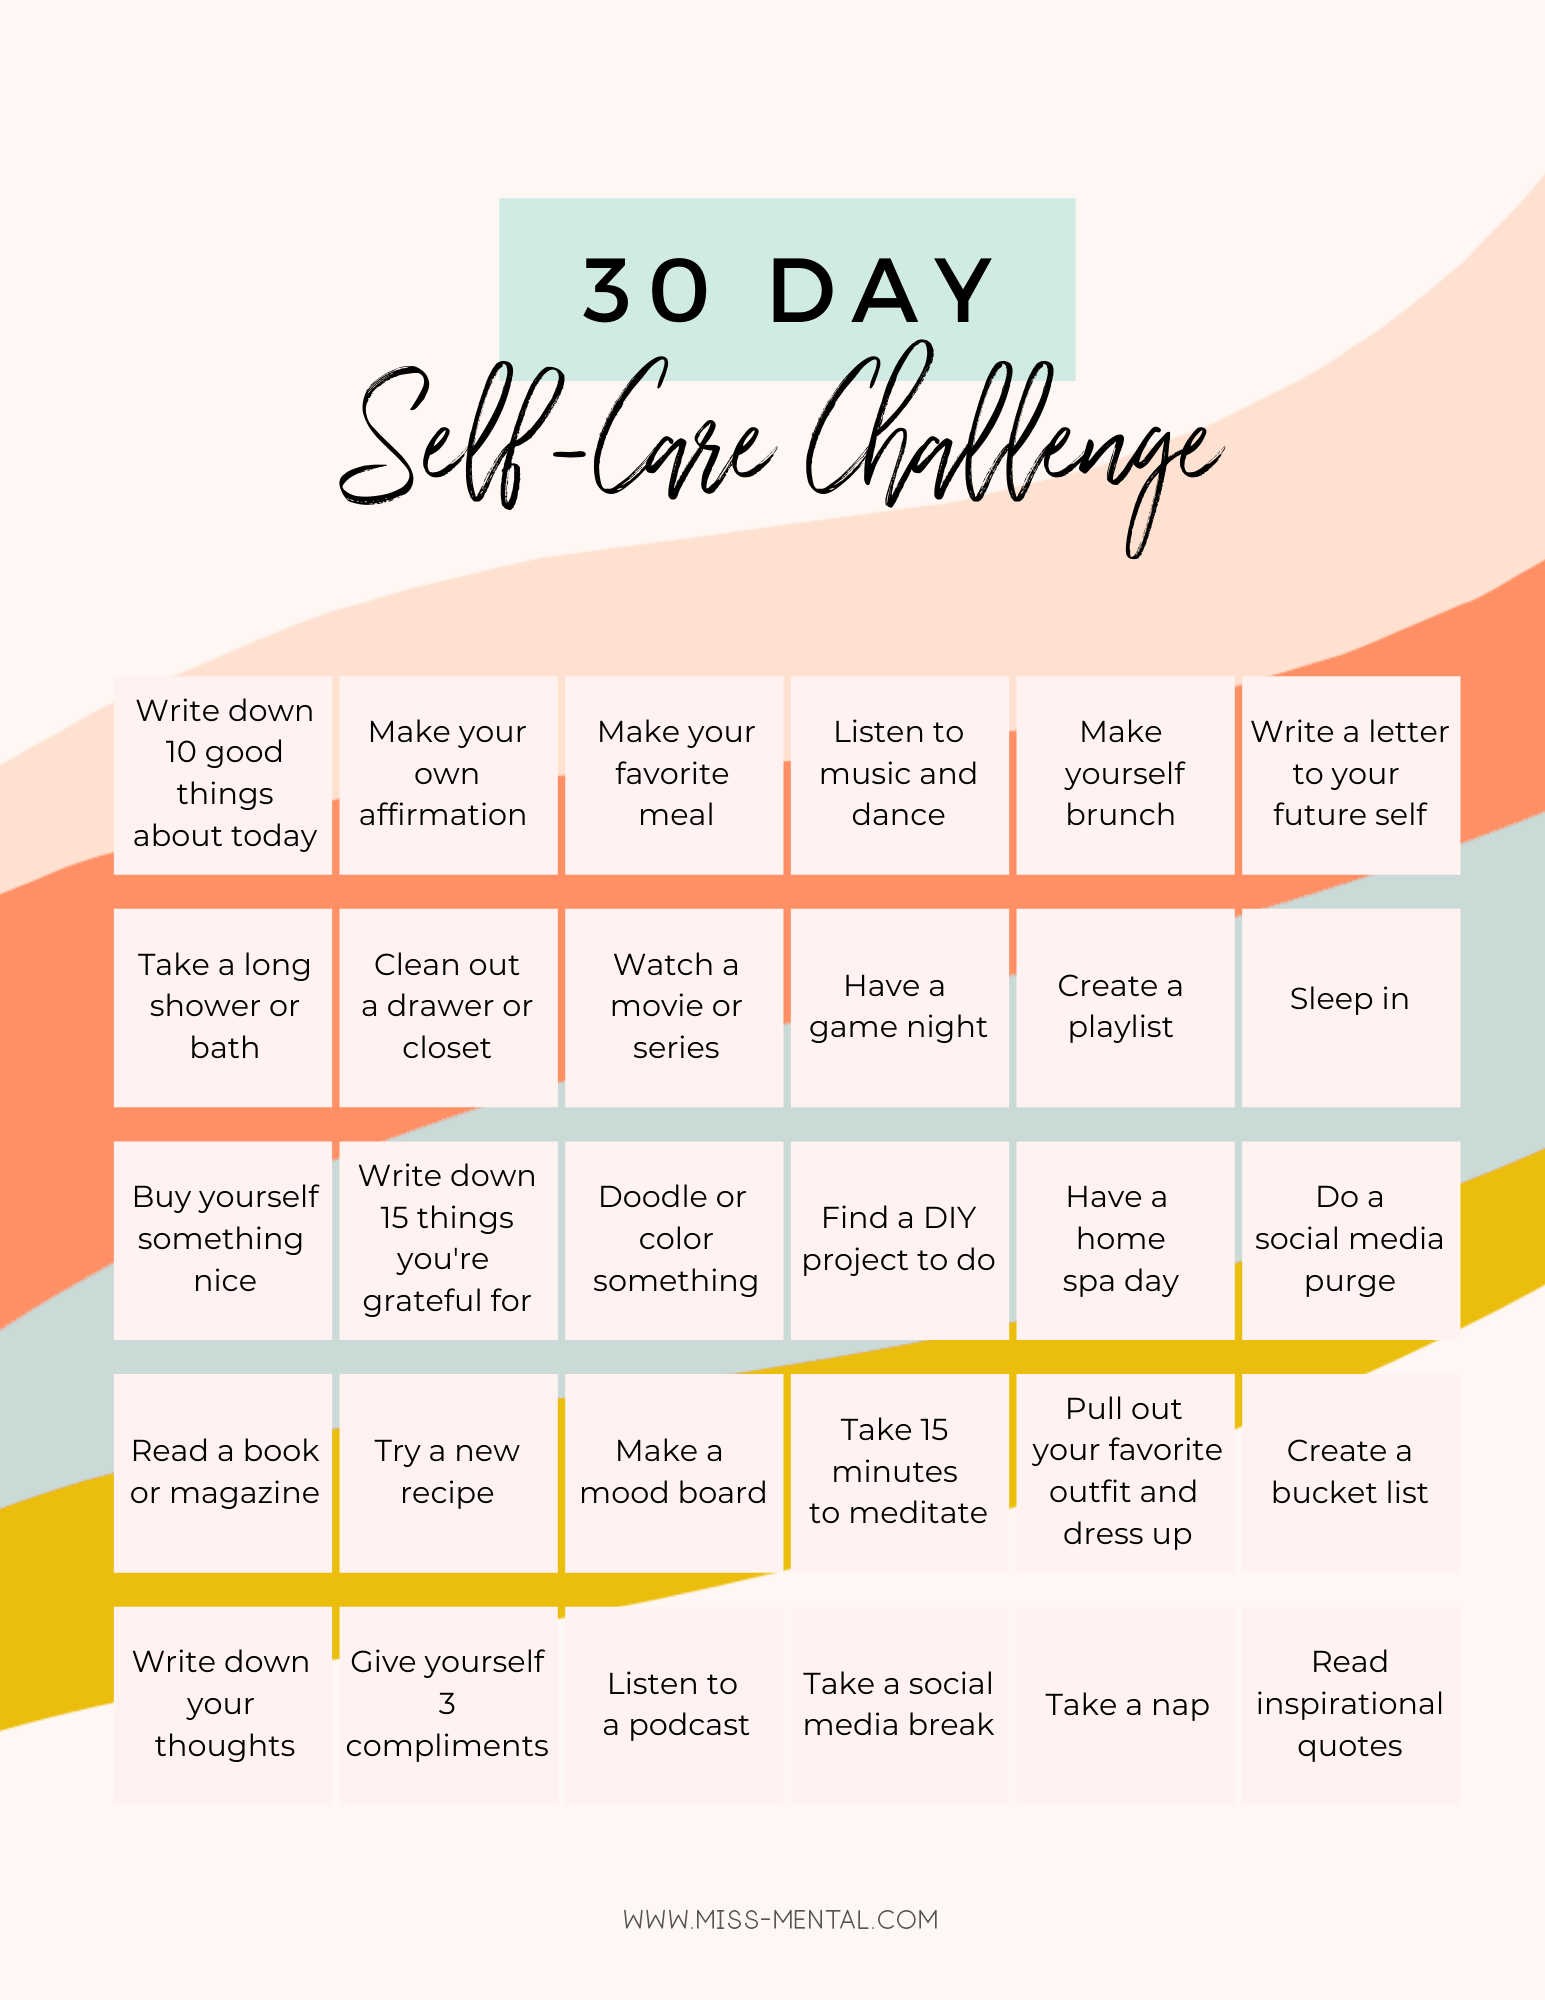 Free printable 30 day self-care challenge. This self-care challenge helps you bring easy self-care ideas into your day. Improve your life with this challenge. Make self-care easy with these self-care ideas for women #missmental #selfcare